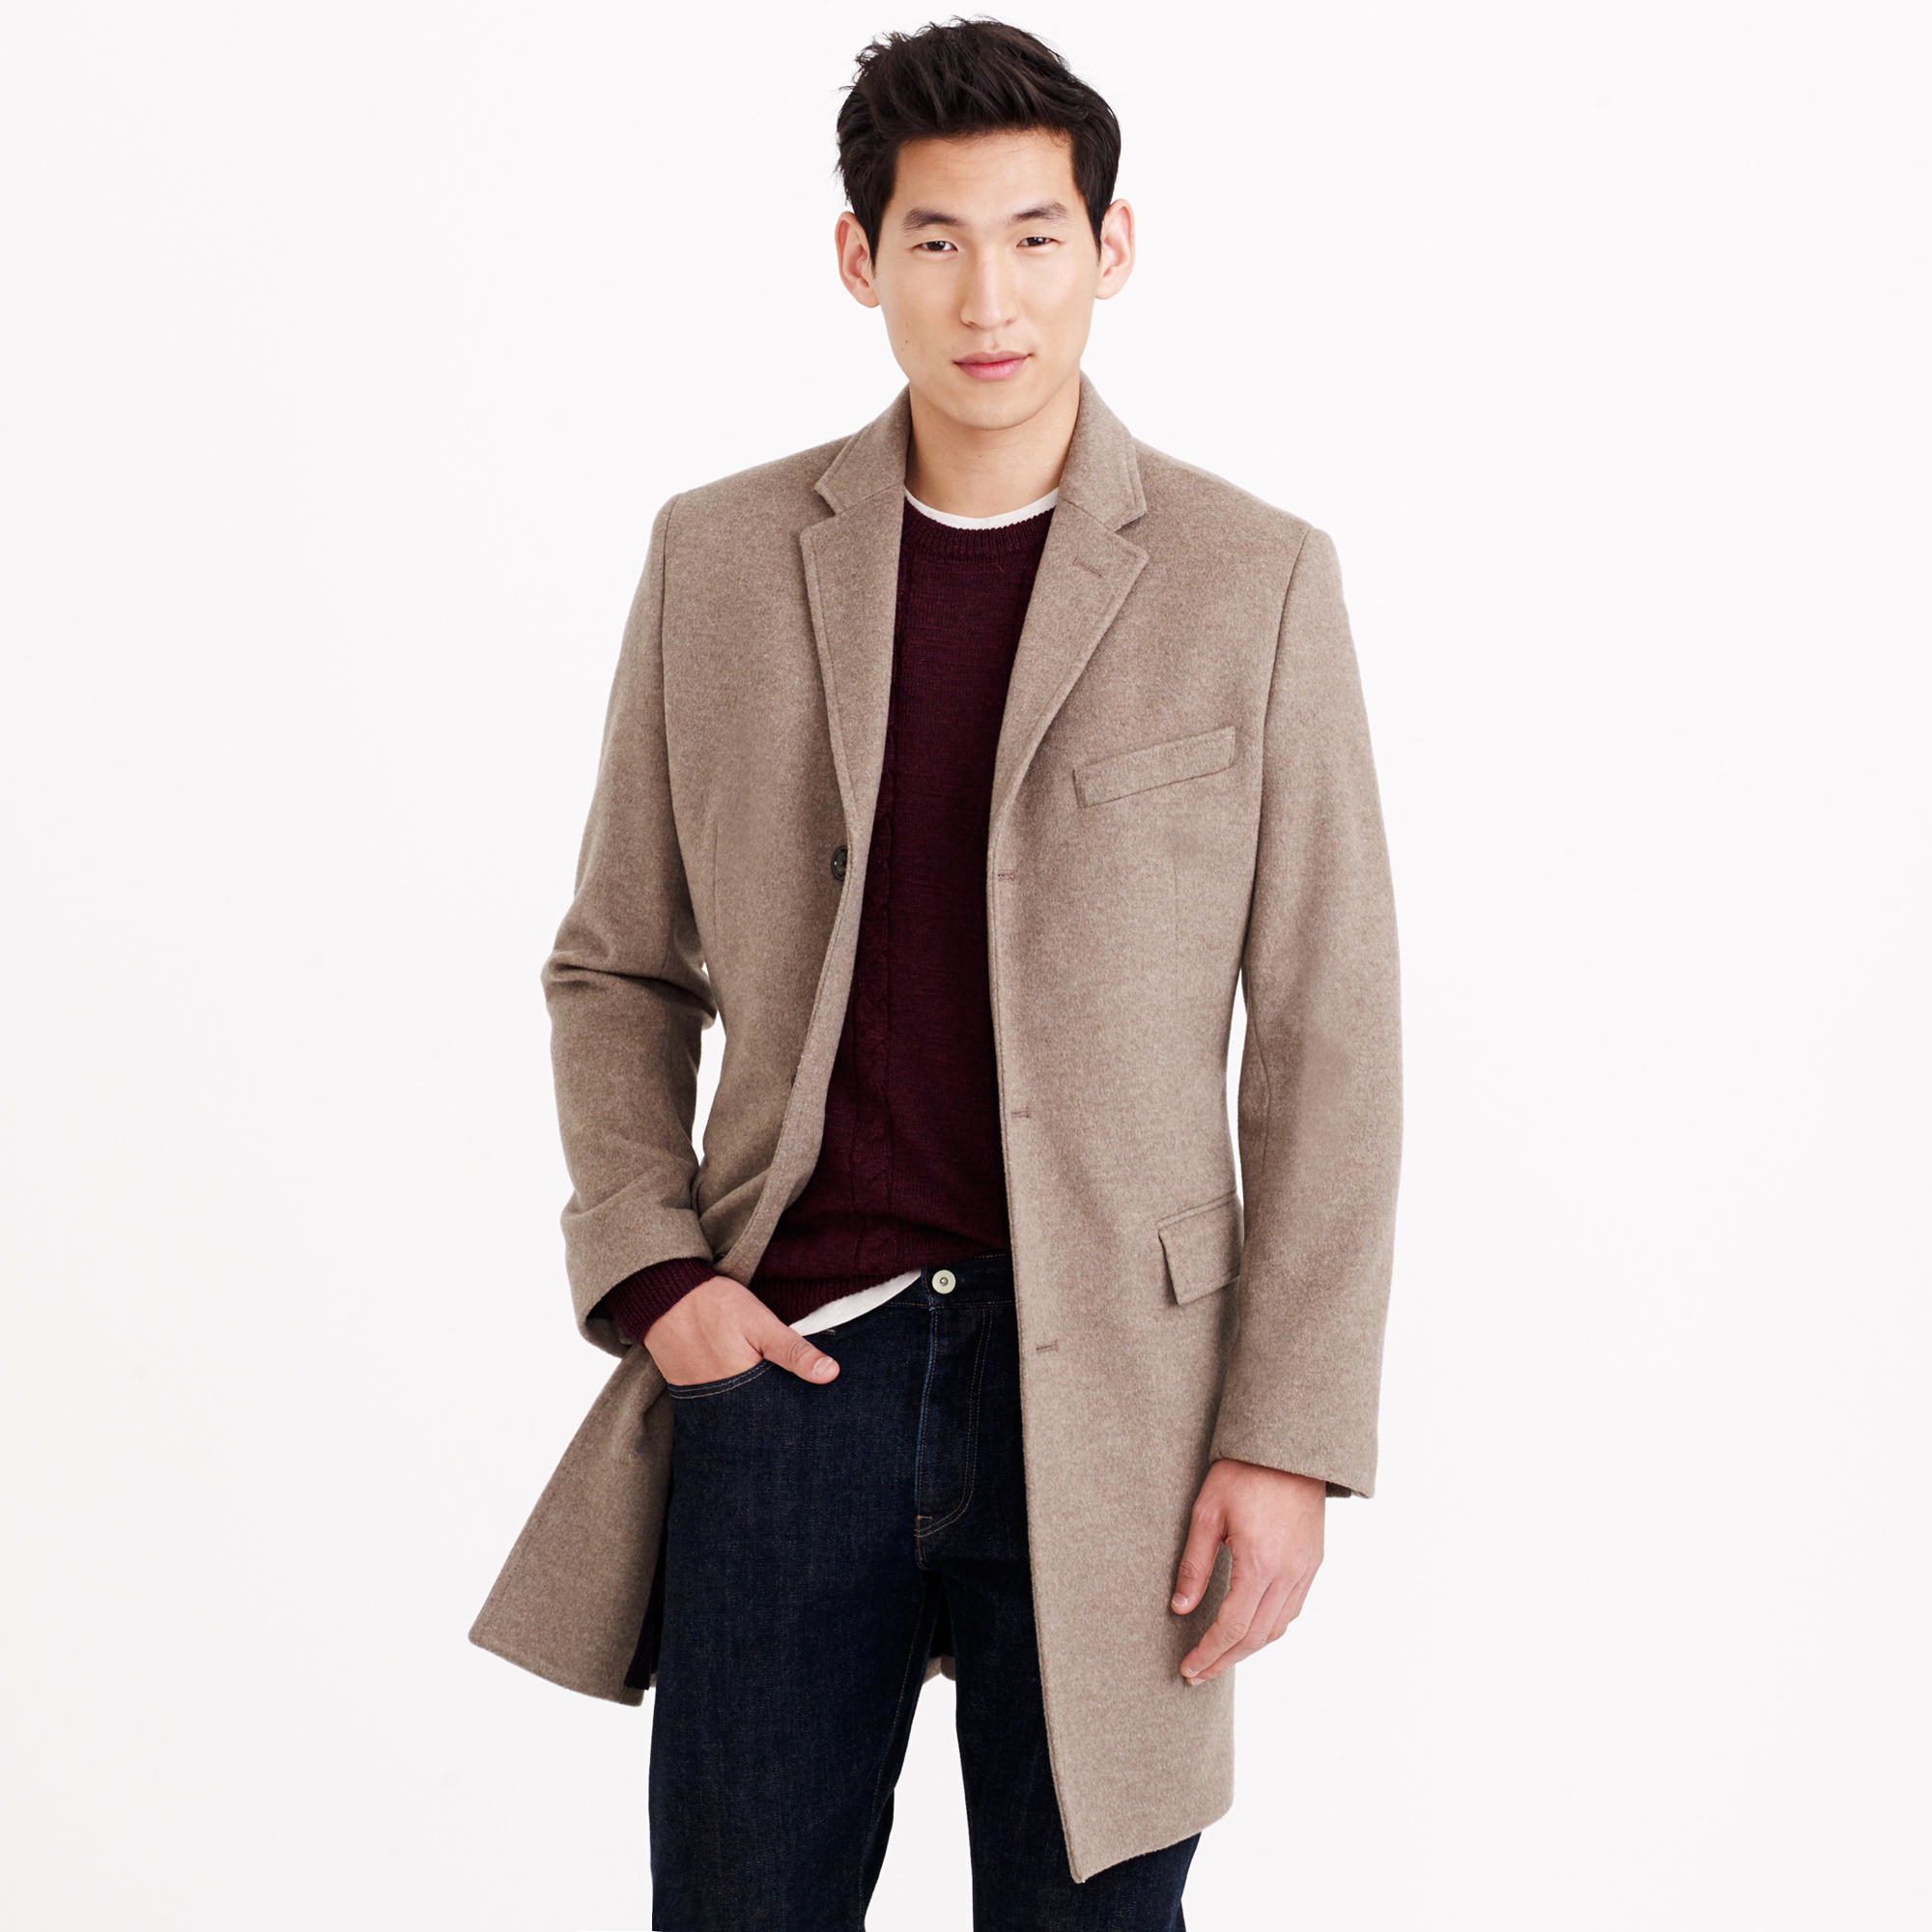 b5509714cf4 Here s the original product page  https   www.jcrew .com p mens categor...insulate 05662